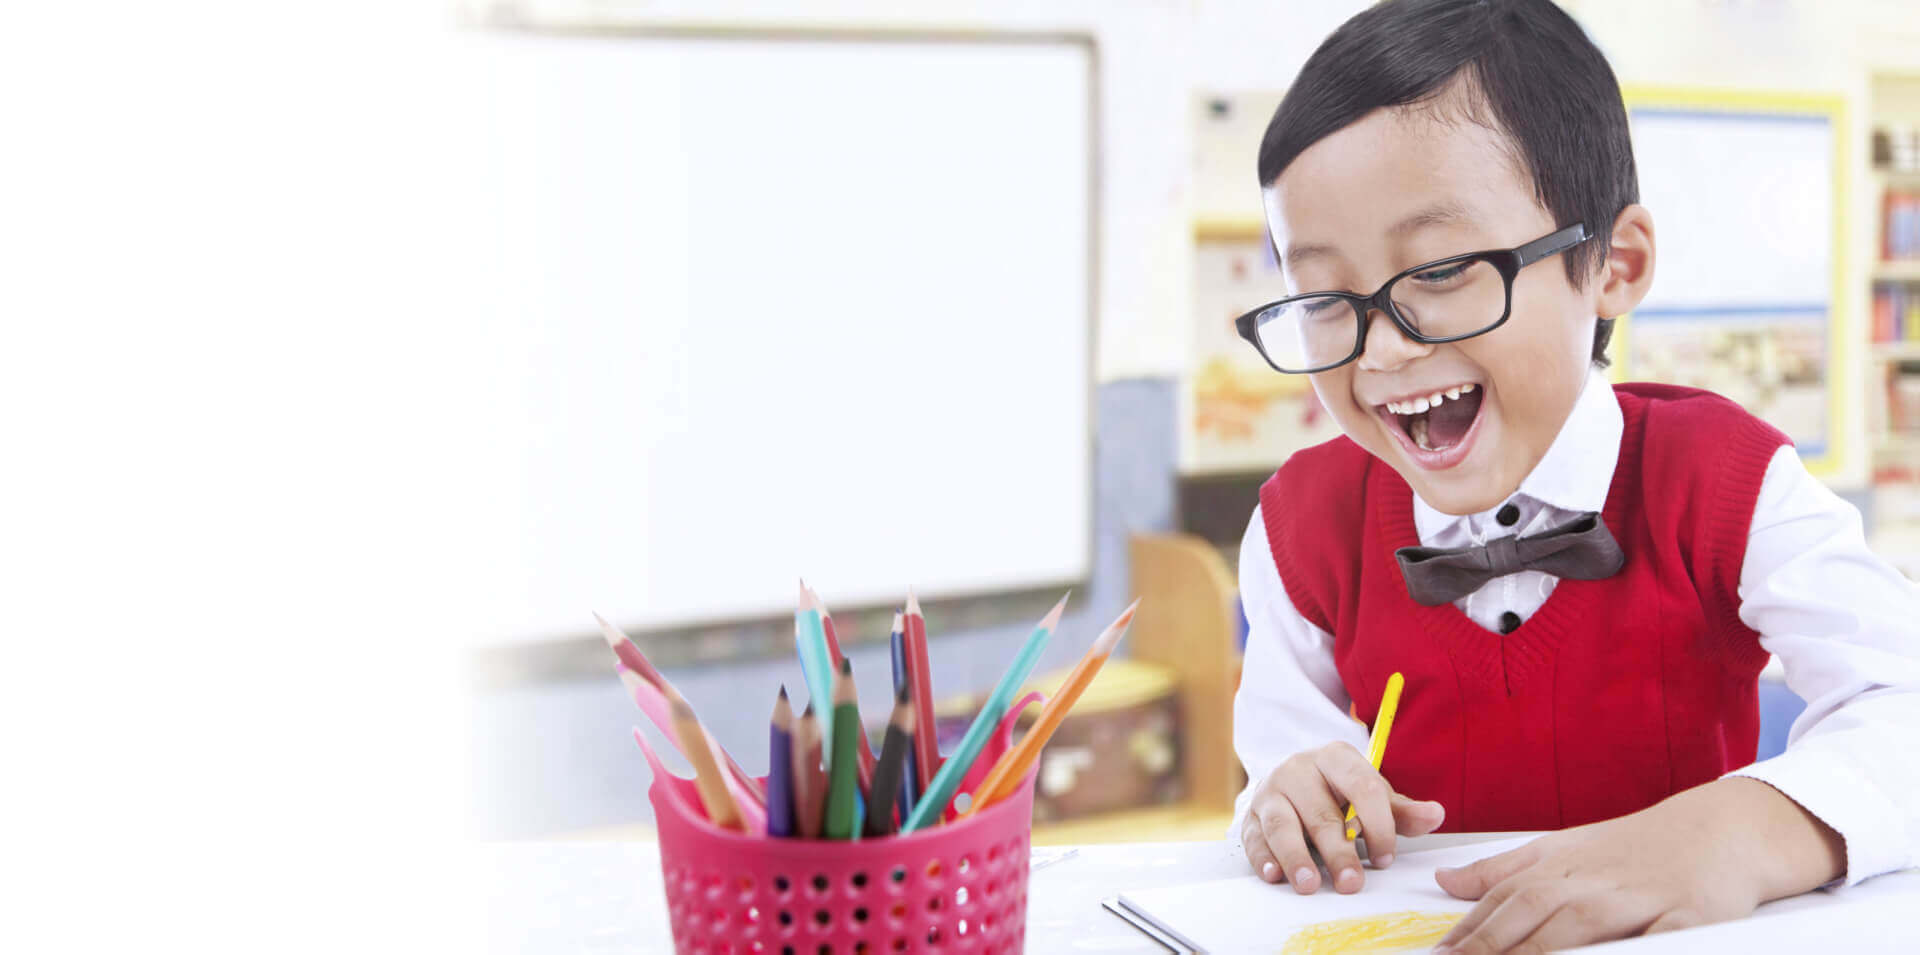 Happy student boy drawing with pencil colors